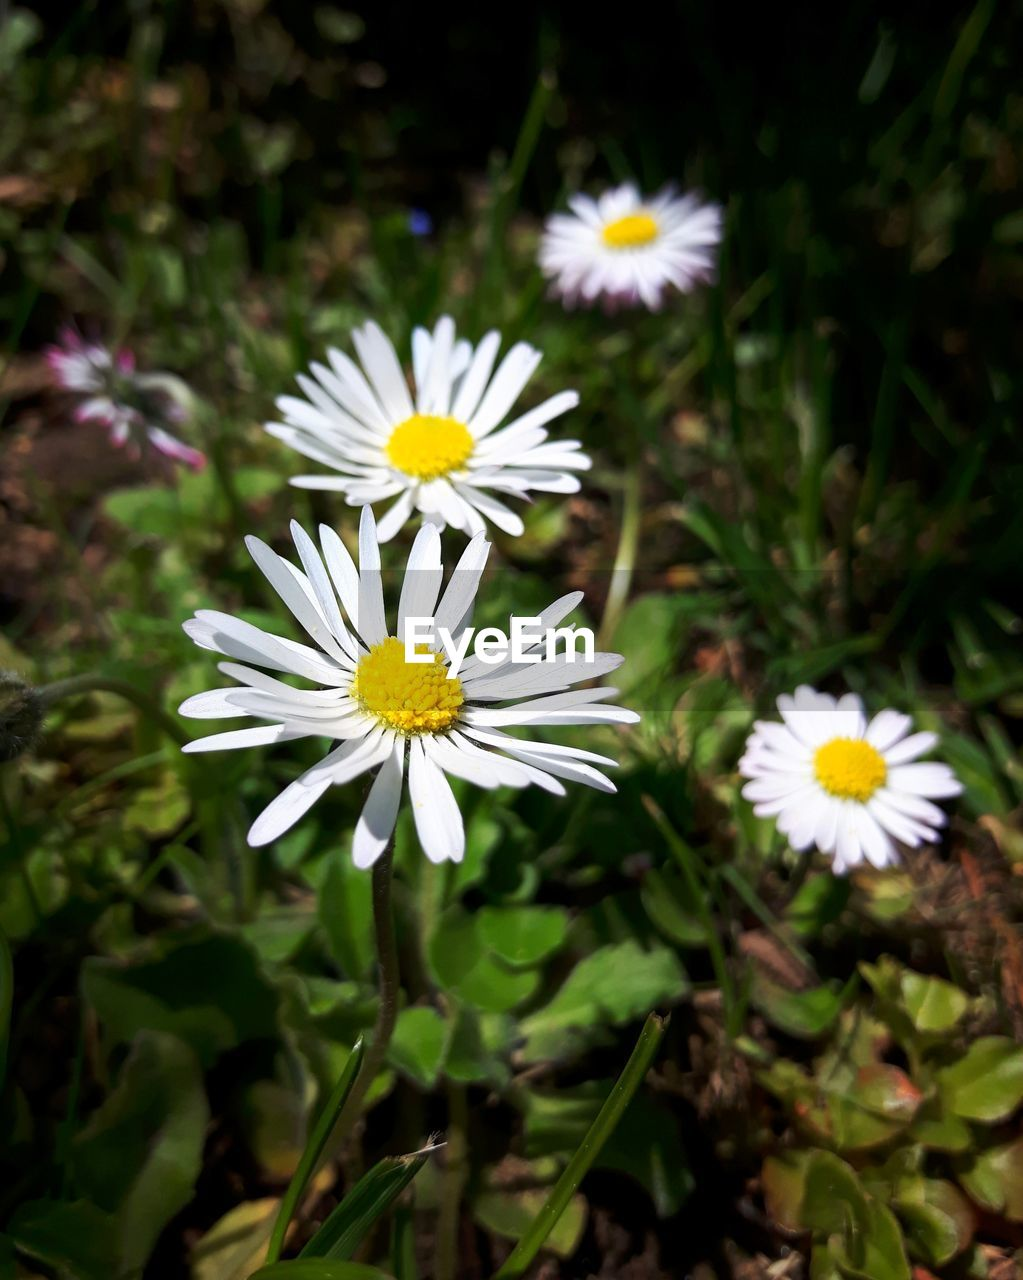 flower, petal, fragility, nature, beauty in nature, freshness, flower head, growth, white color, daisy, blooming, pollen, yellow, day, close-up, outdoors, no people, plant, cosmos flower, osteospermum, crocus